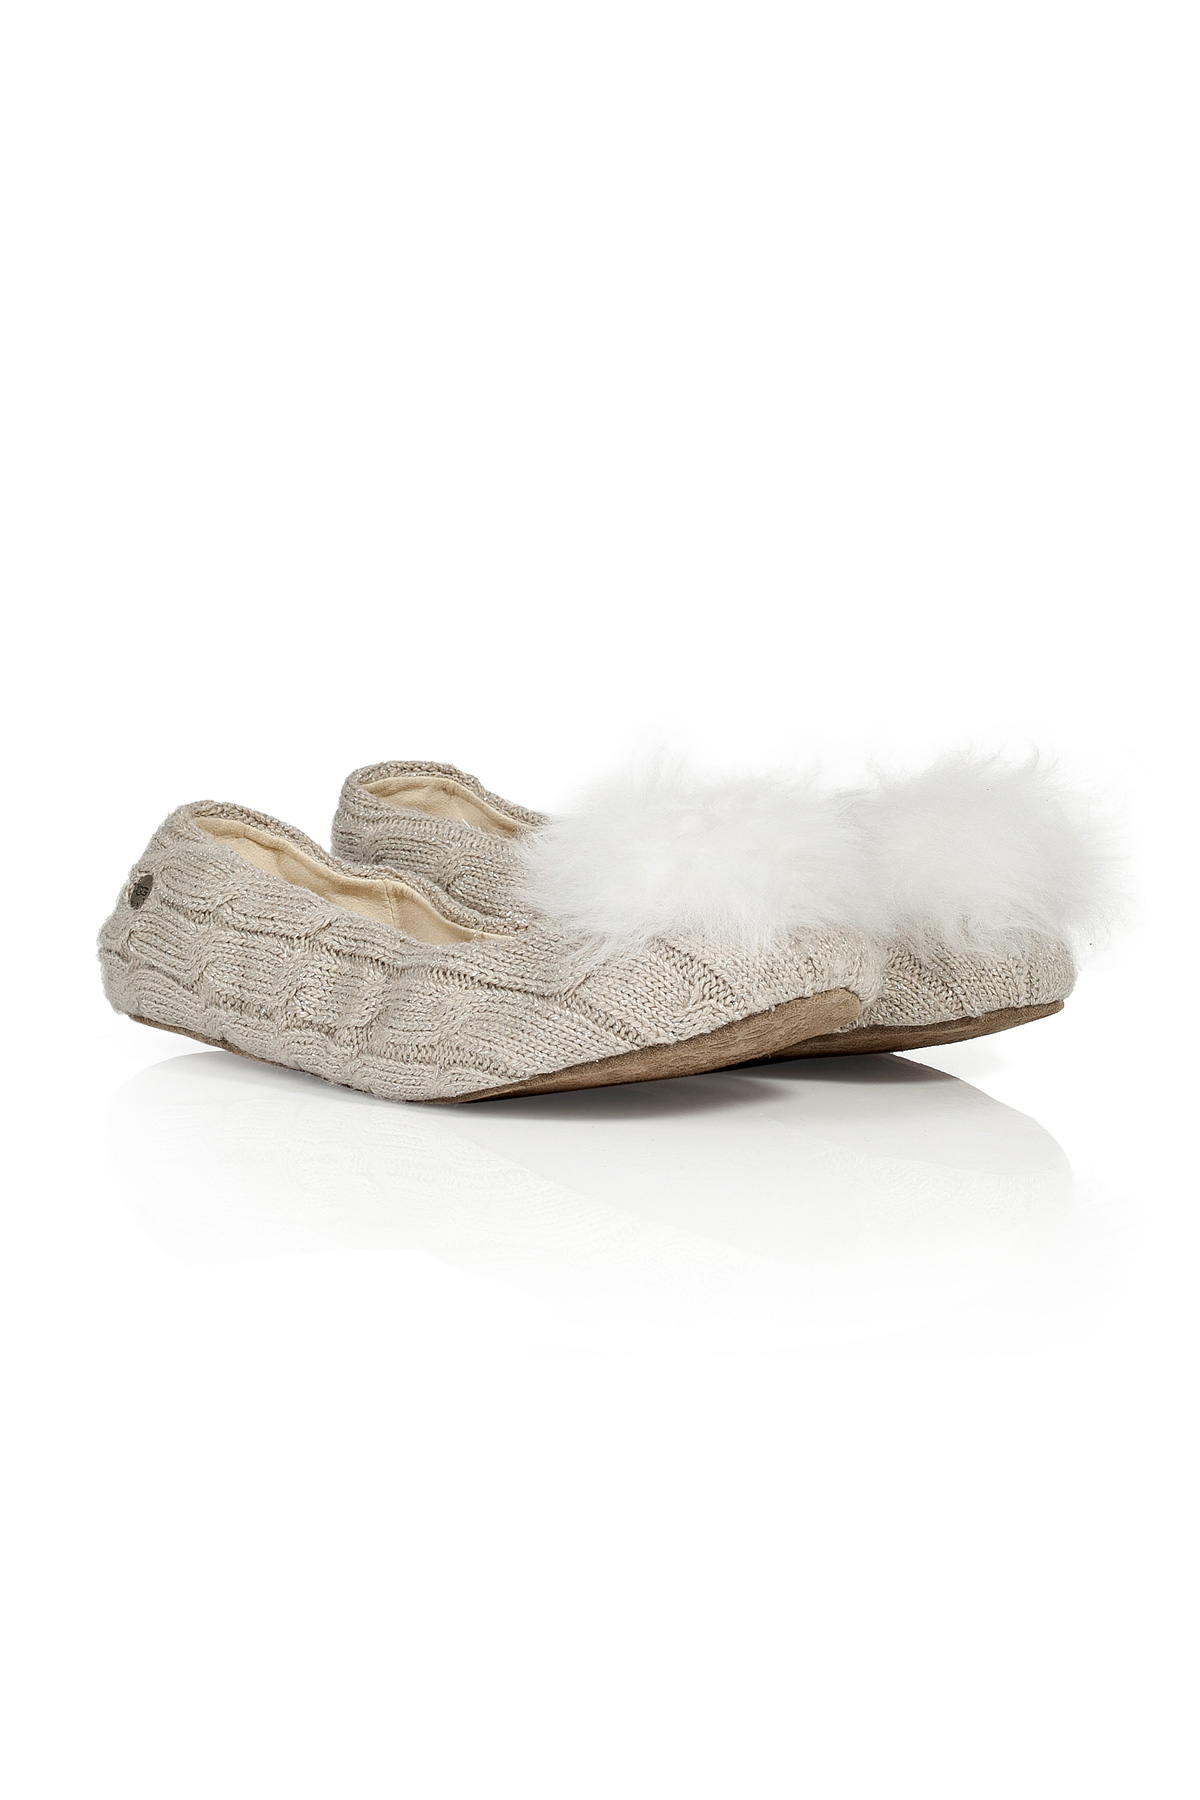 542462c2a UGG Wool Slippers With Fur Pompom in White - Lyst